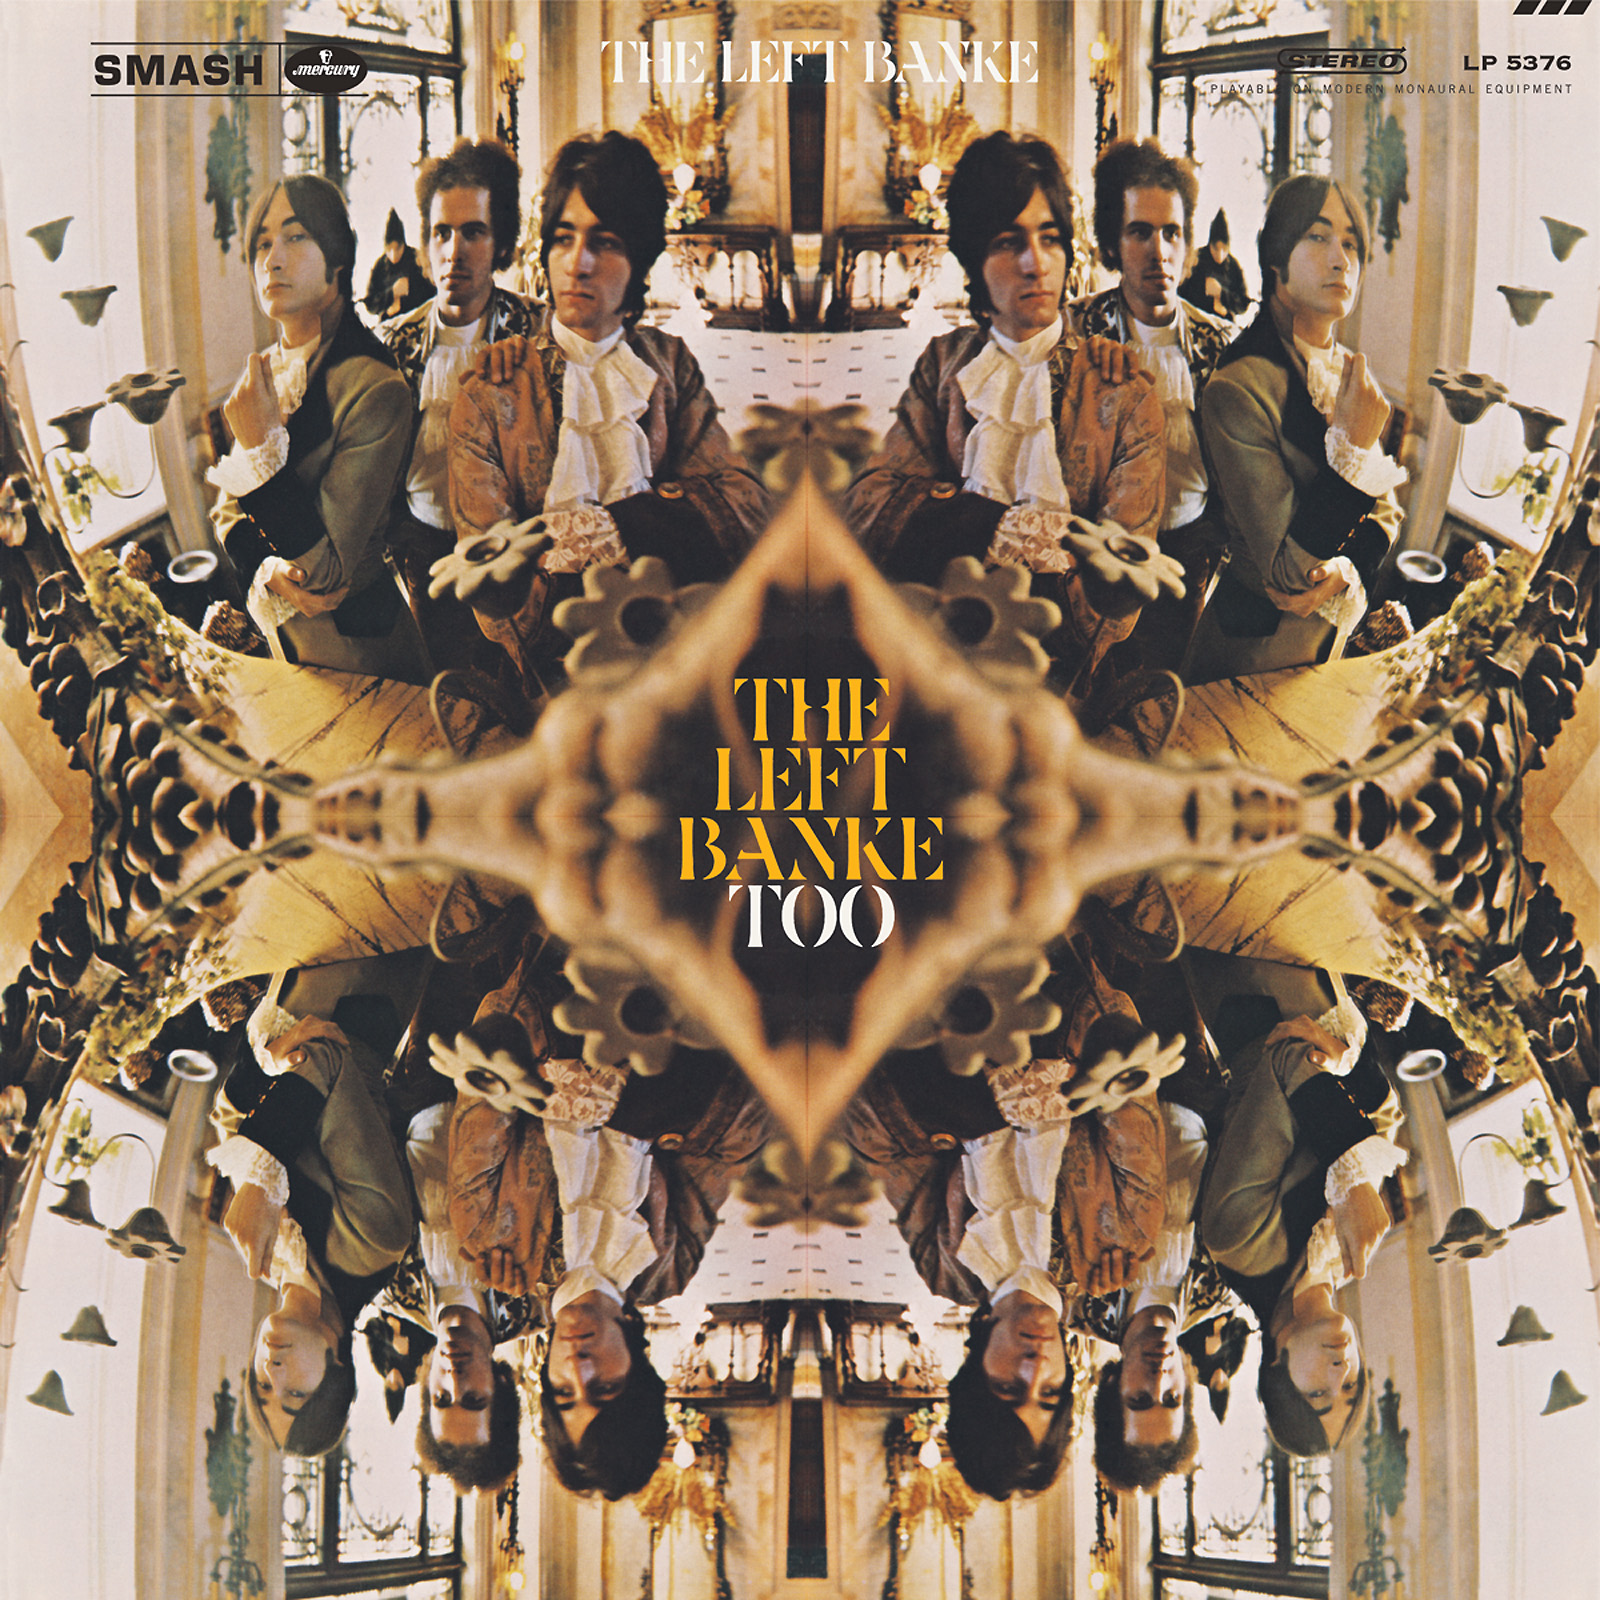 Left Banke, The - The Left Banke Too LP